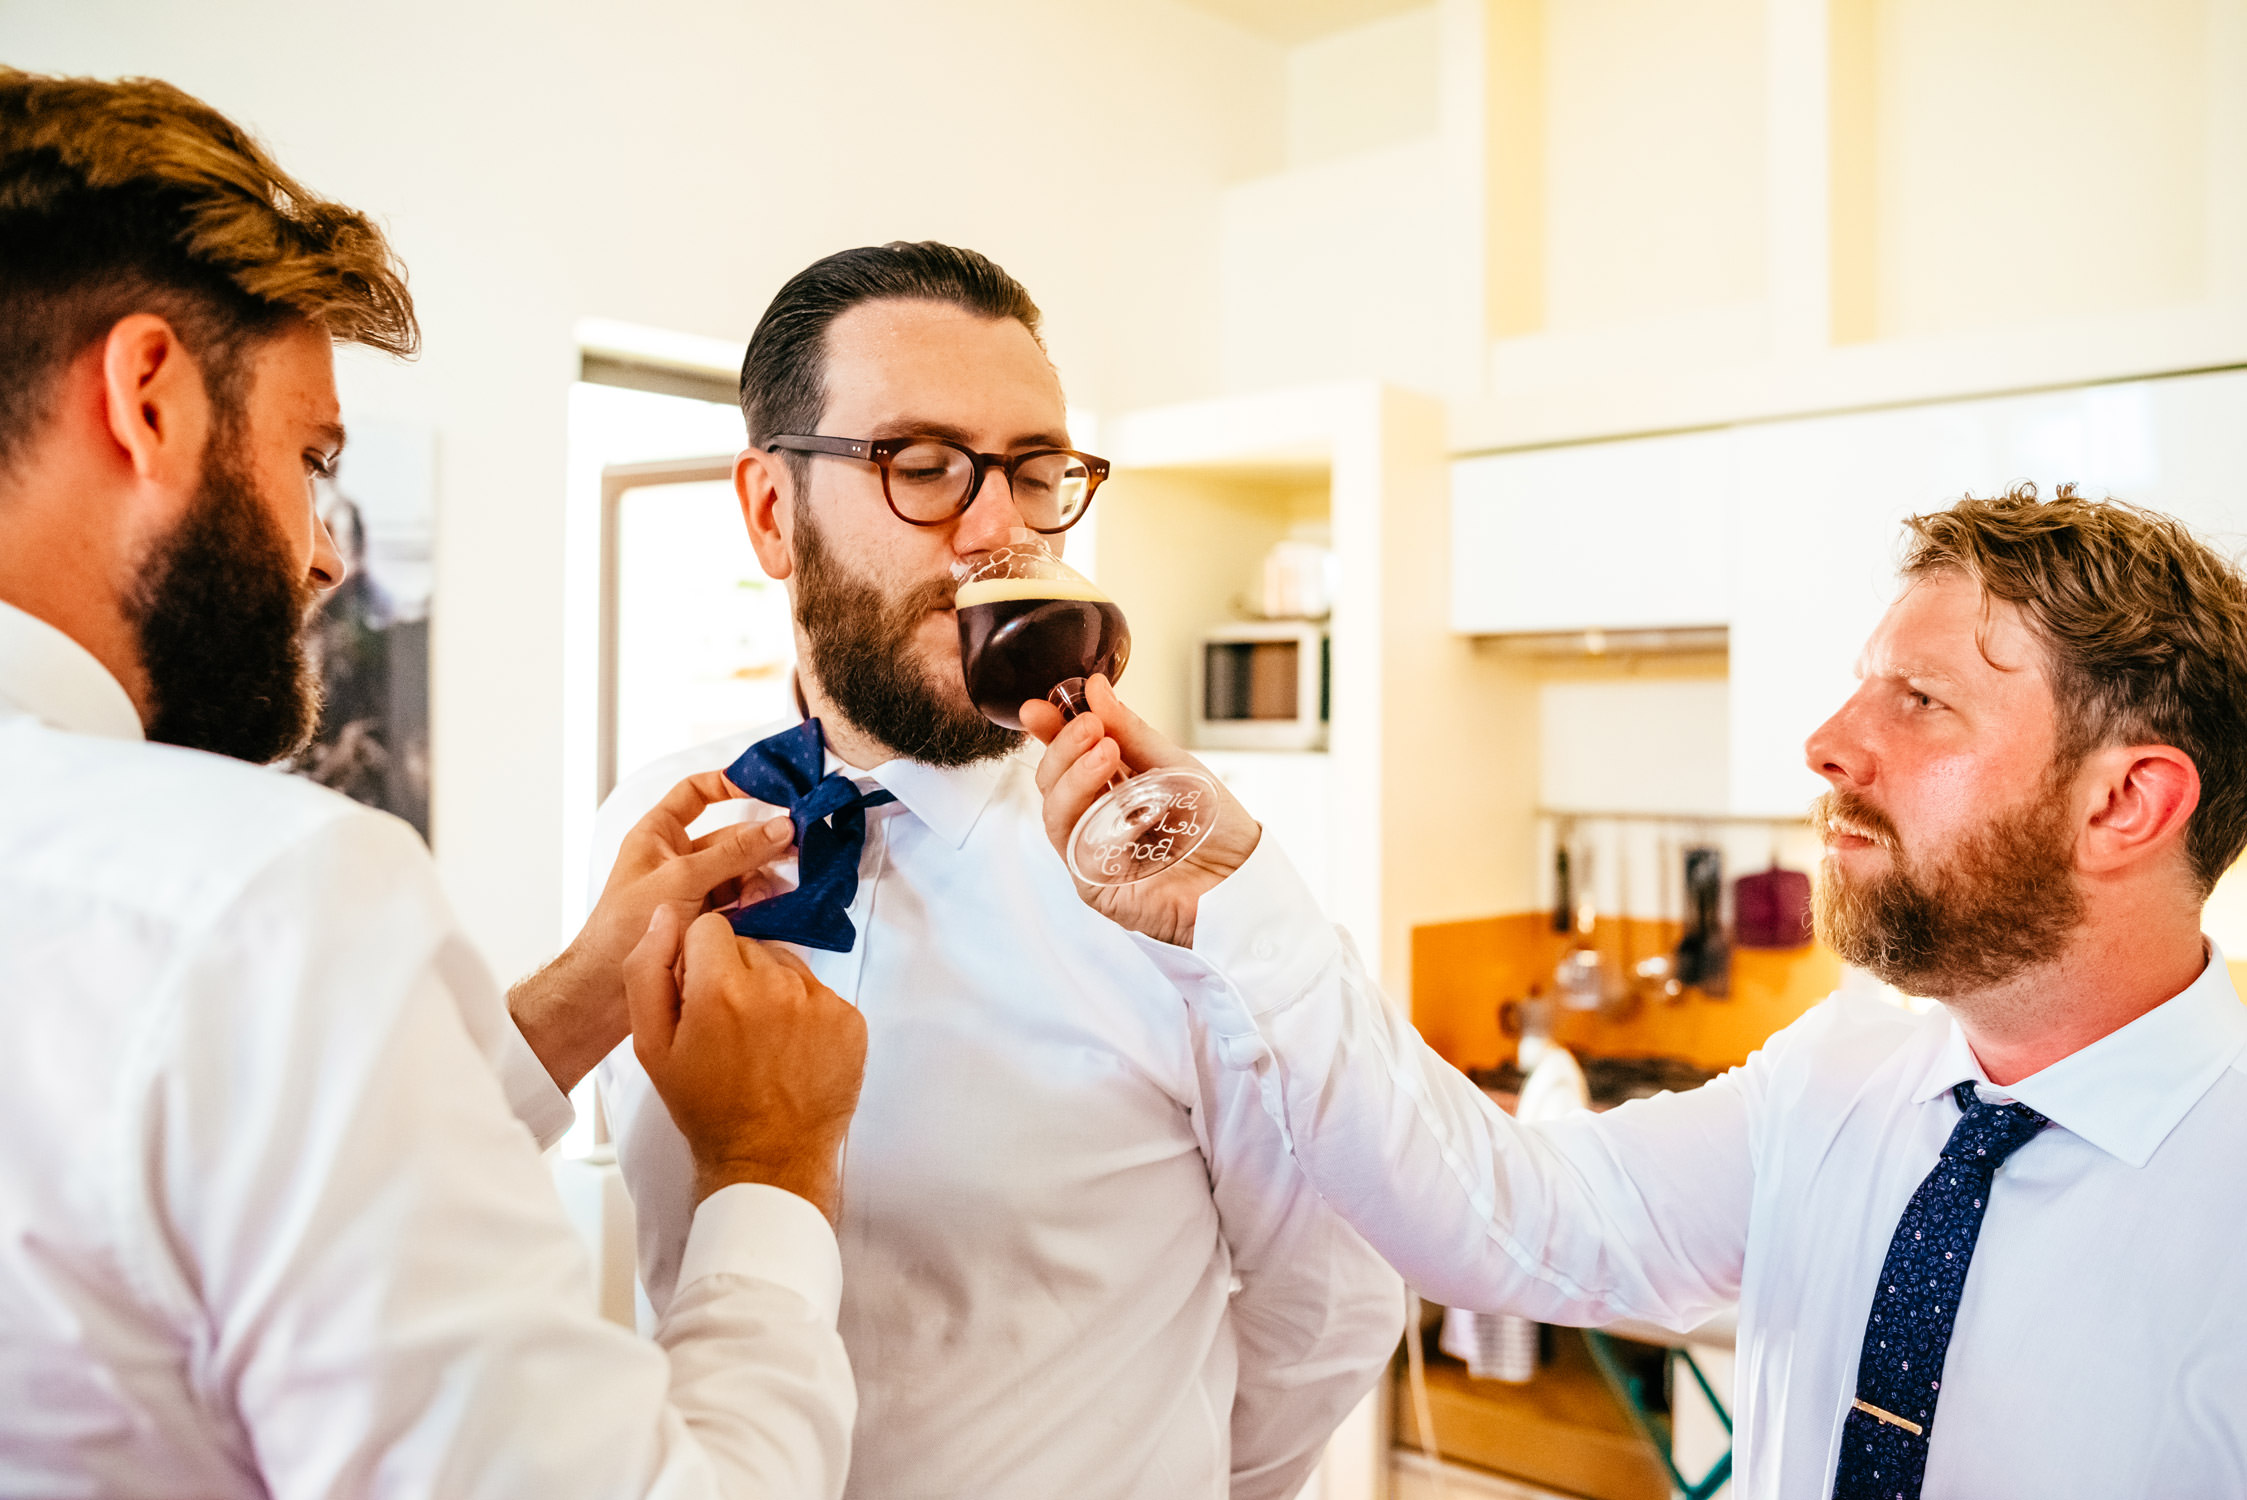 Groom getting ready with help from his groomsmen and beer before the wedding at Studi Romani Rome,Italy. Photo by destination wedding photographer Samo Rovan.